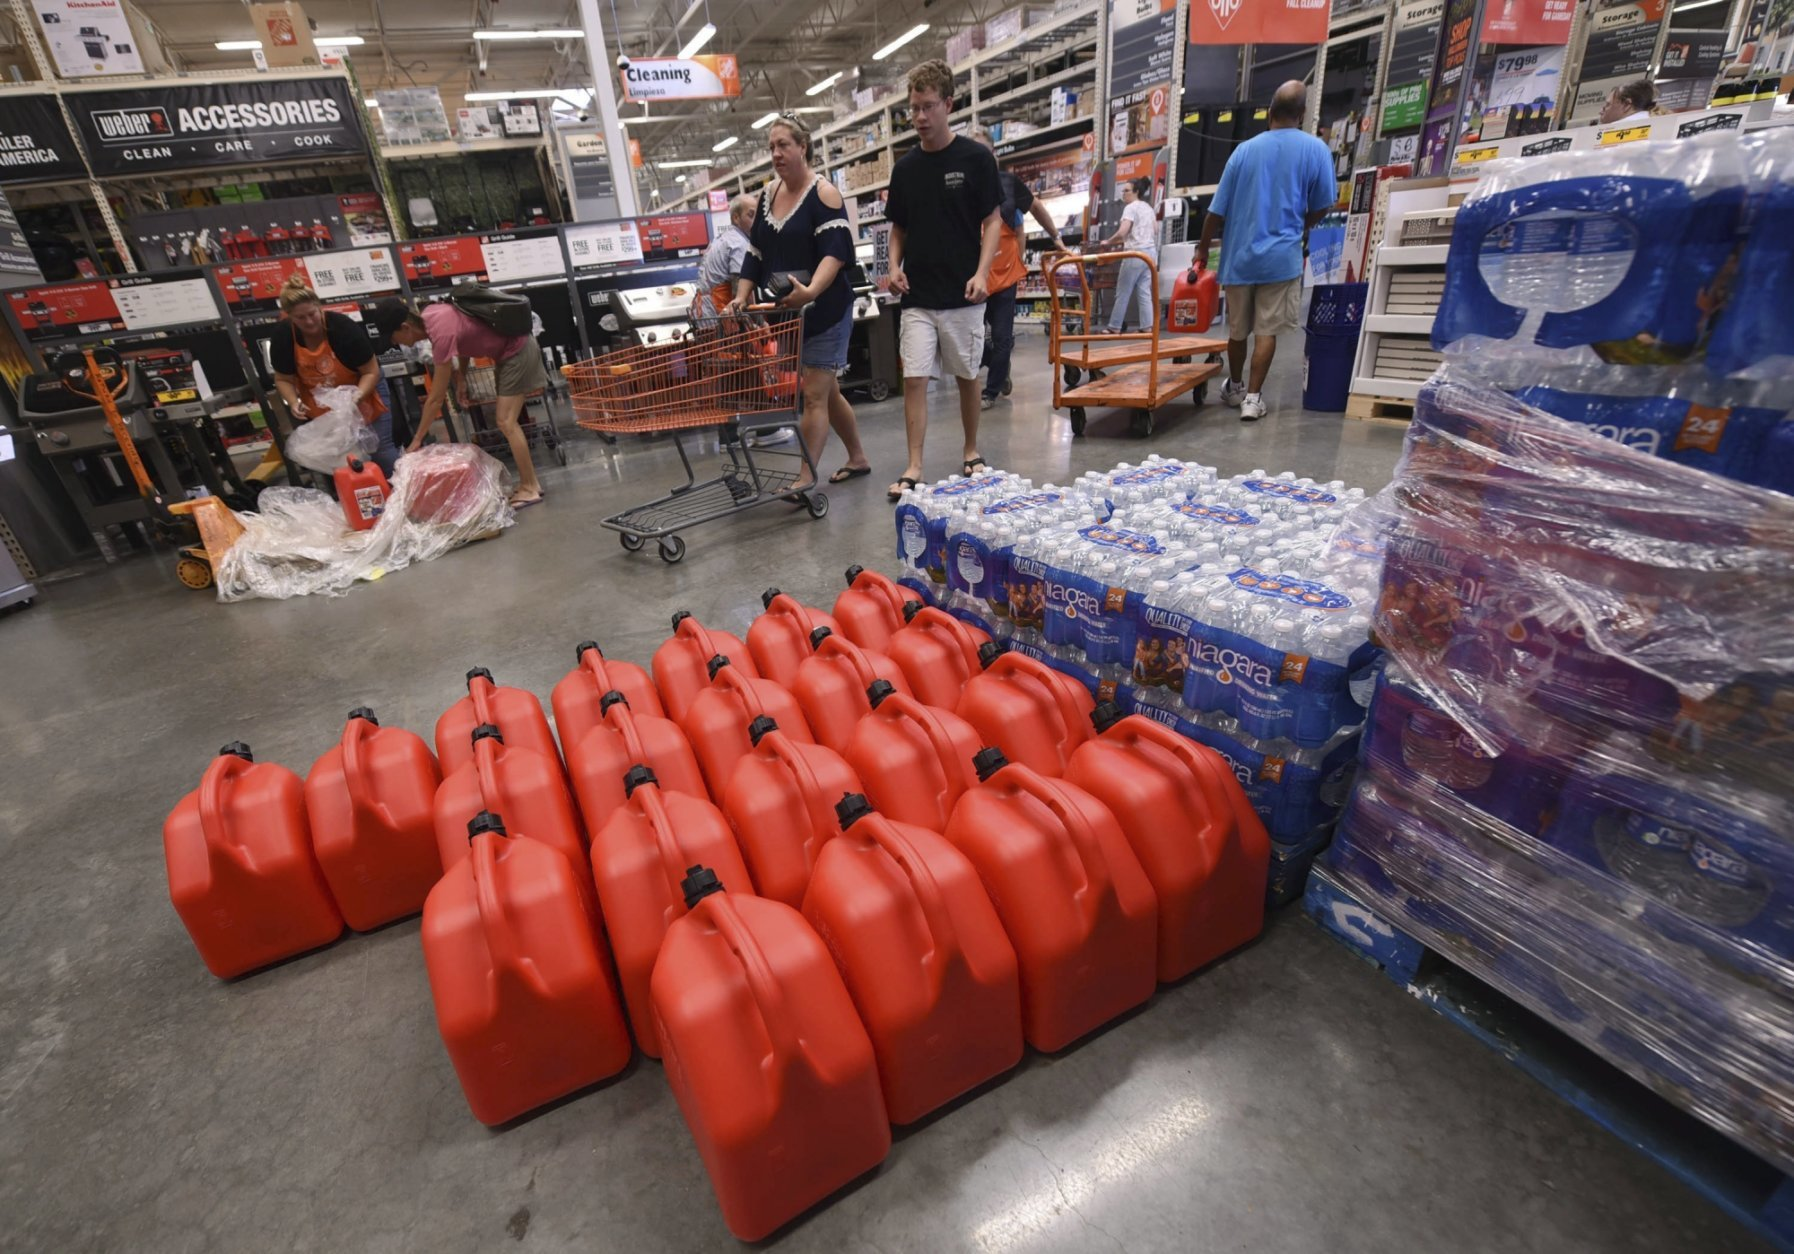 People buy supplies at The Home Depot on Monday, Sept. 10, 2018, in Wilmington, N.C. Florence rapidly strengthened into a potentially catastrophic hurricane on Monday as it closed in on North and South Carolina, carrying winds and water that could wreak havoc over a wide stretch of the eastern United States later this week. (Ken Blevins/The Star-News via AP)